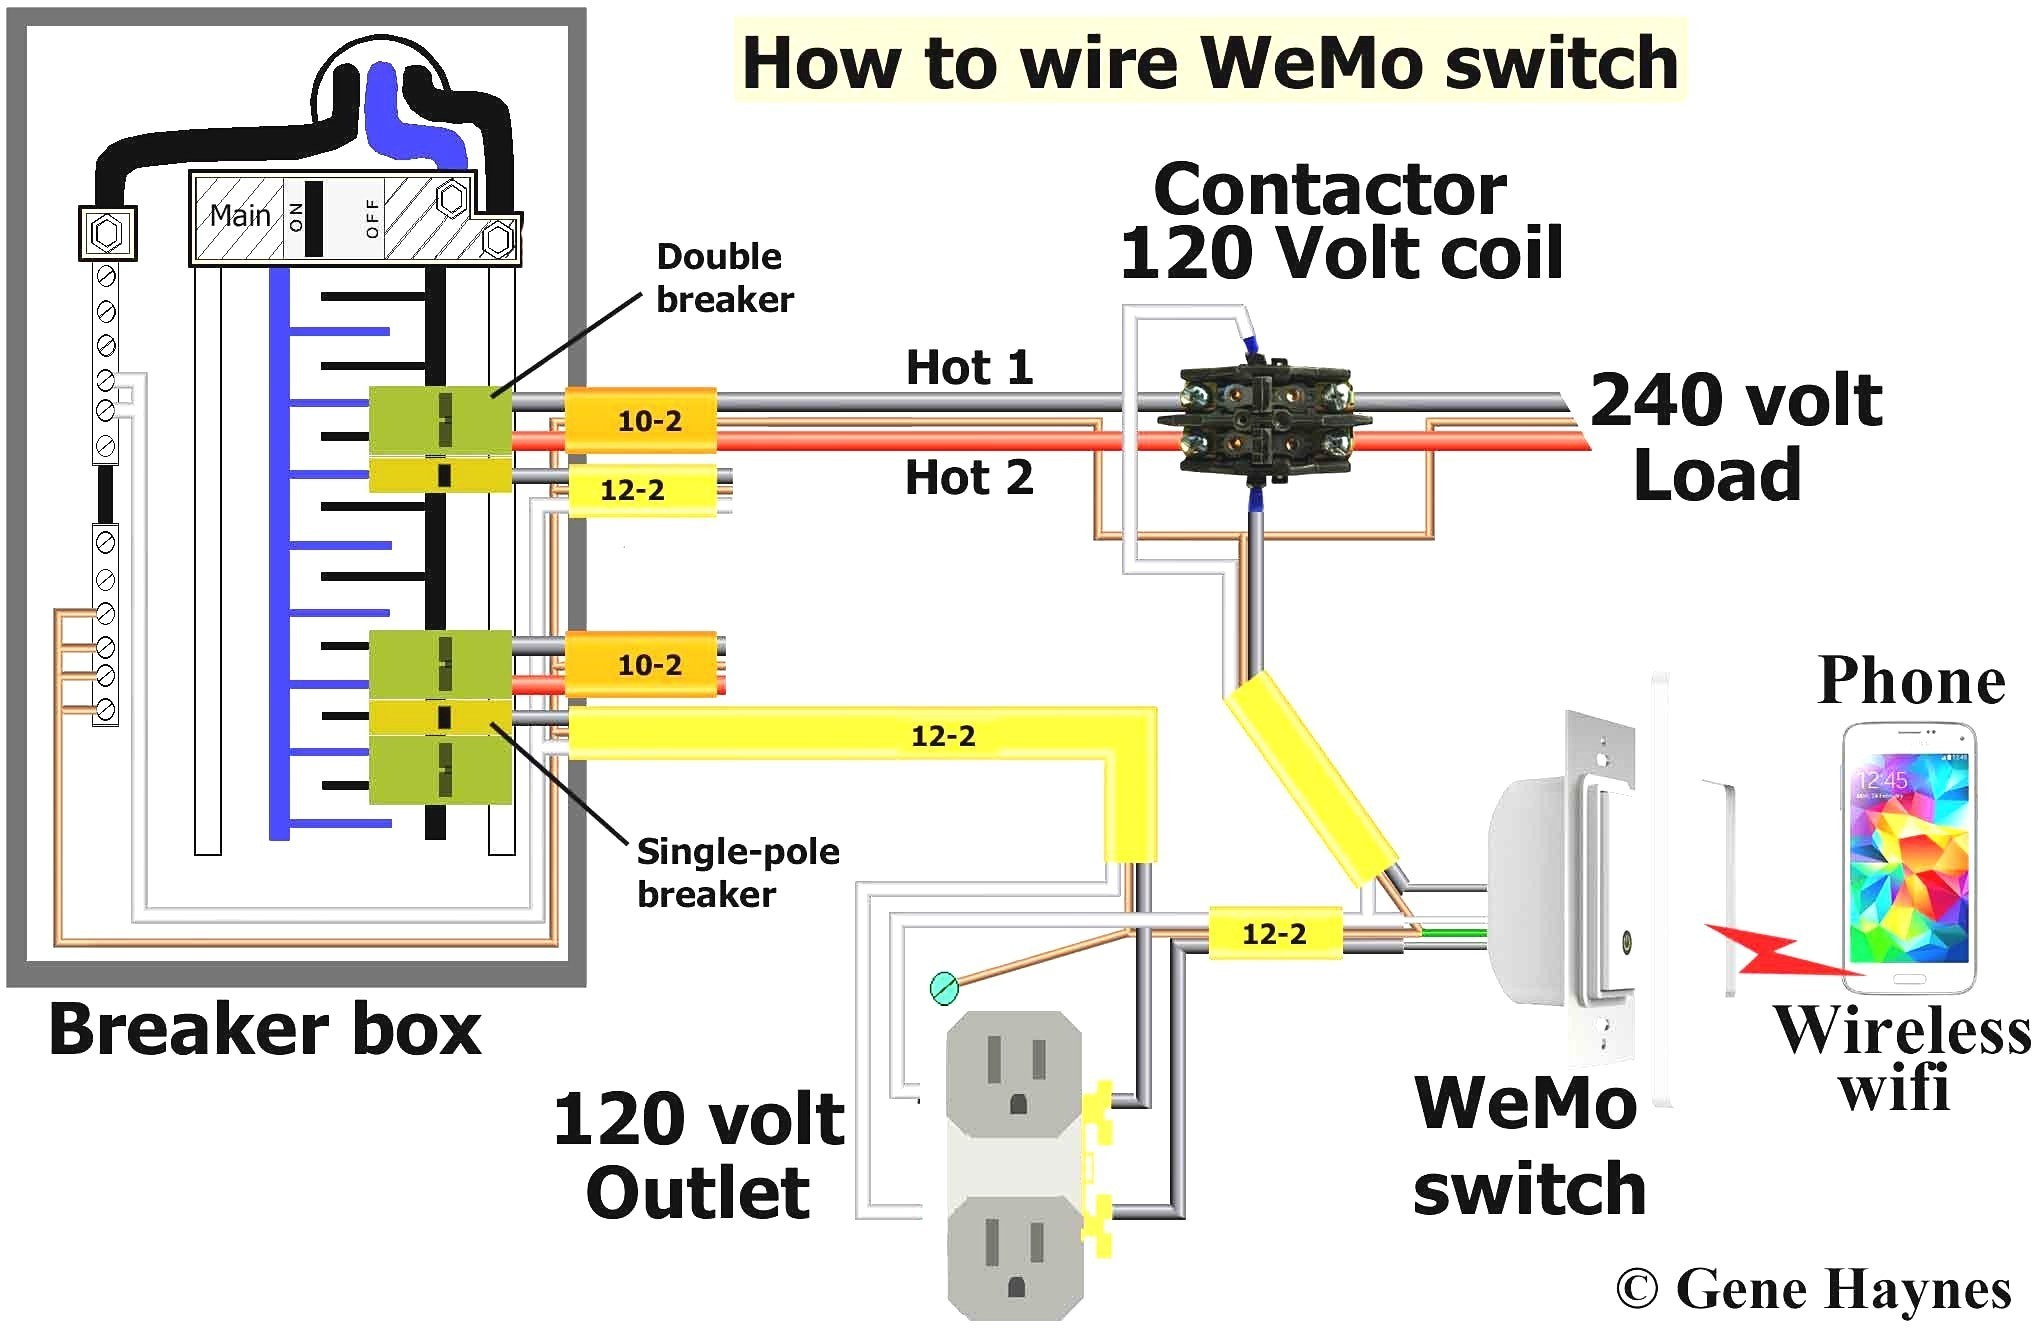 110 Volt Single Pole Contactor Wiring Diagram Library Moreover How To Wire 240v Outlet On 220 Circuit Breaker 2 Electric Motor